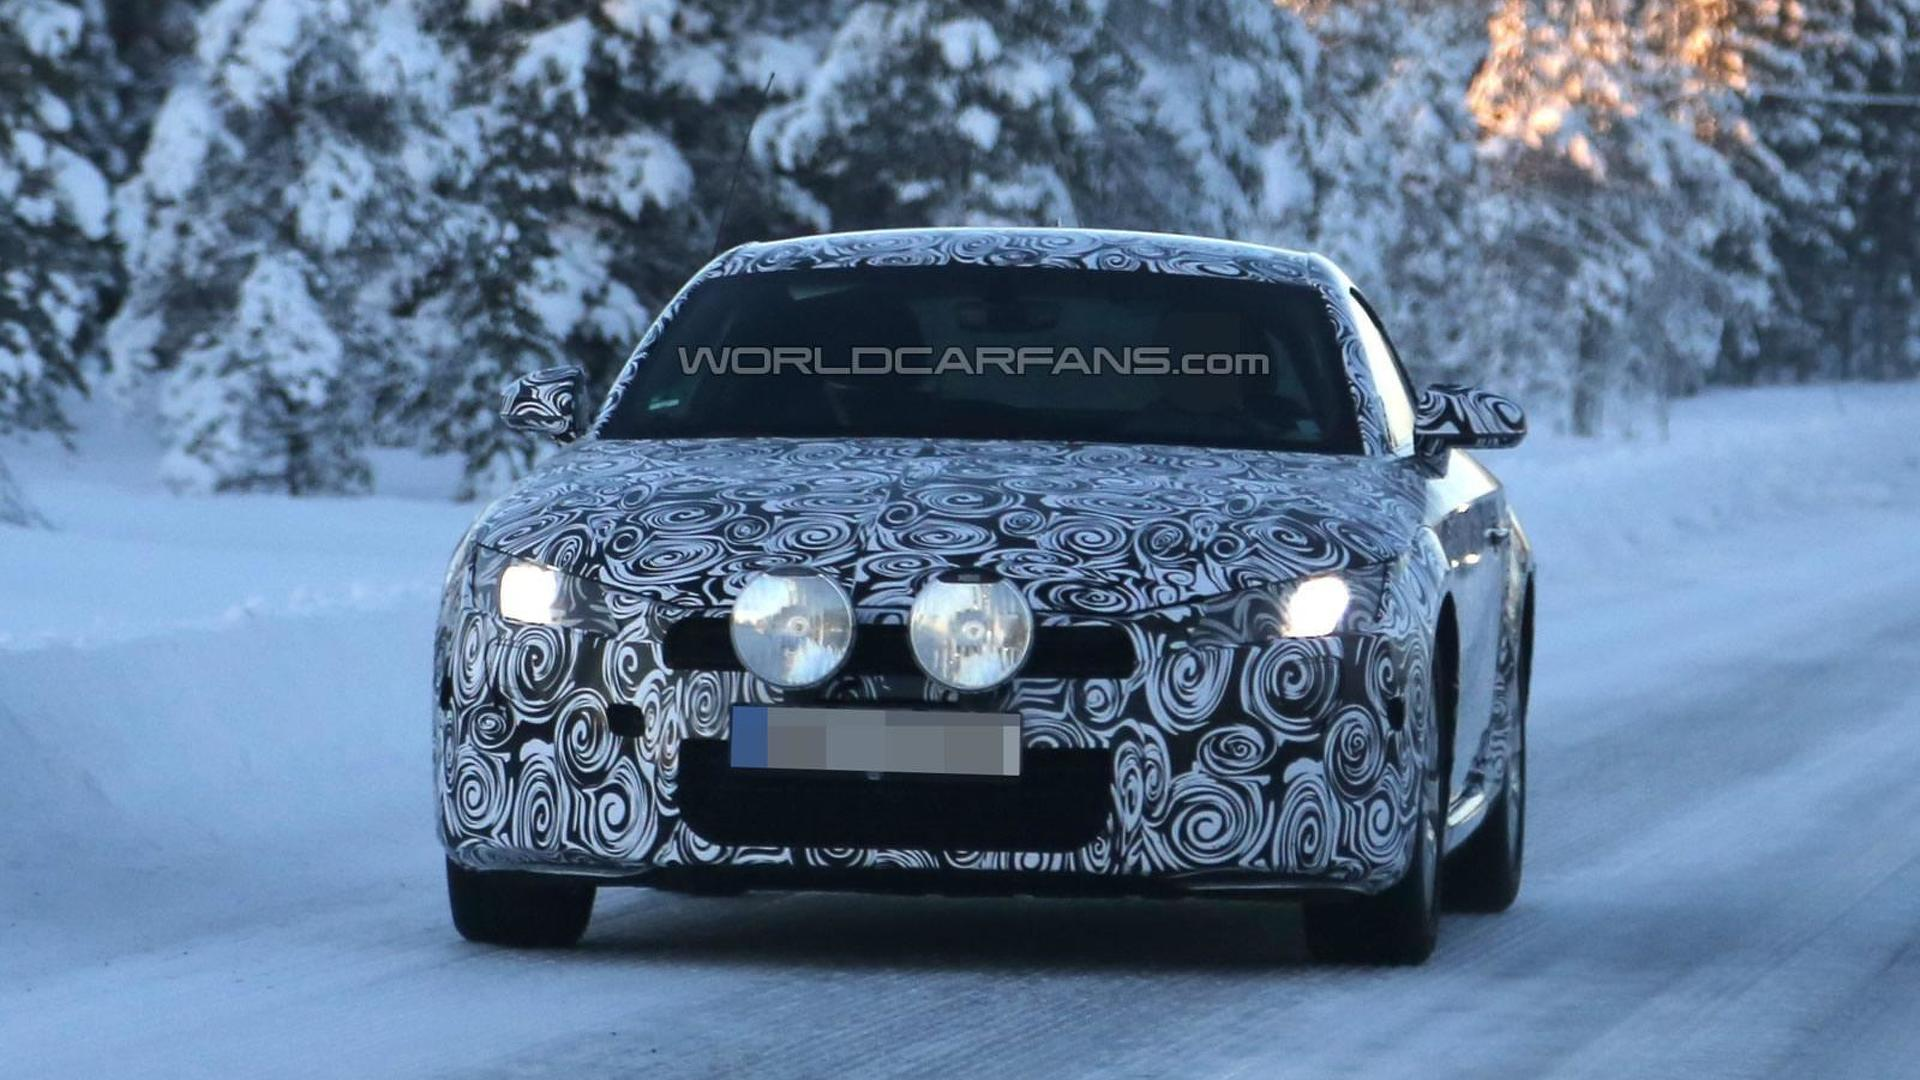 2014 Audi TT spied conducting final testing, to debut in March at Geneva Motor Show